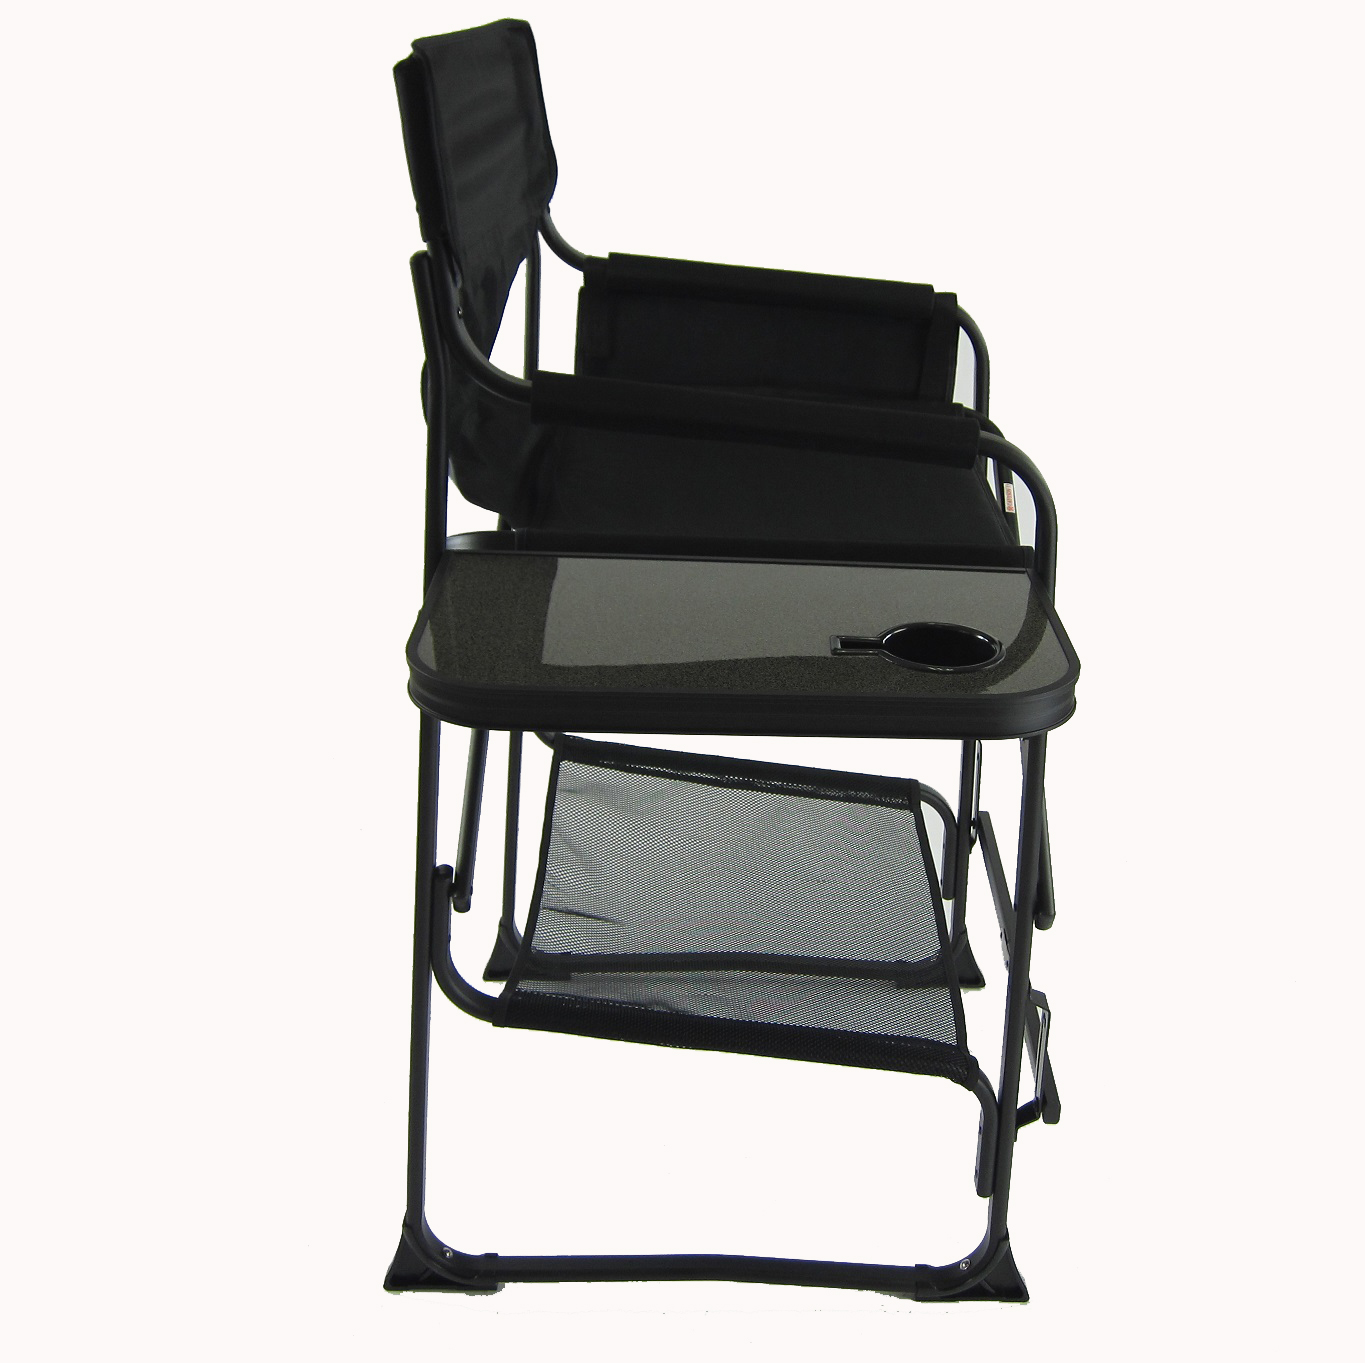 tuscanypro big daddy oversized heavy duty tall makeup chair 29 seat height bigger wider. Black Bedroom Furniture Sets. Home Design Ideas